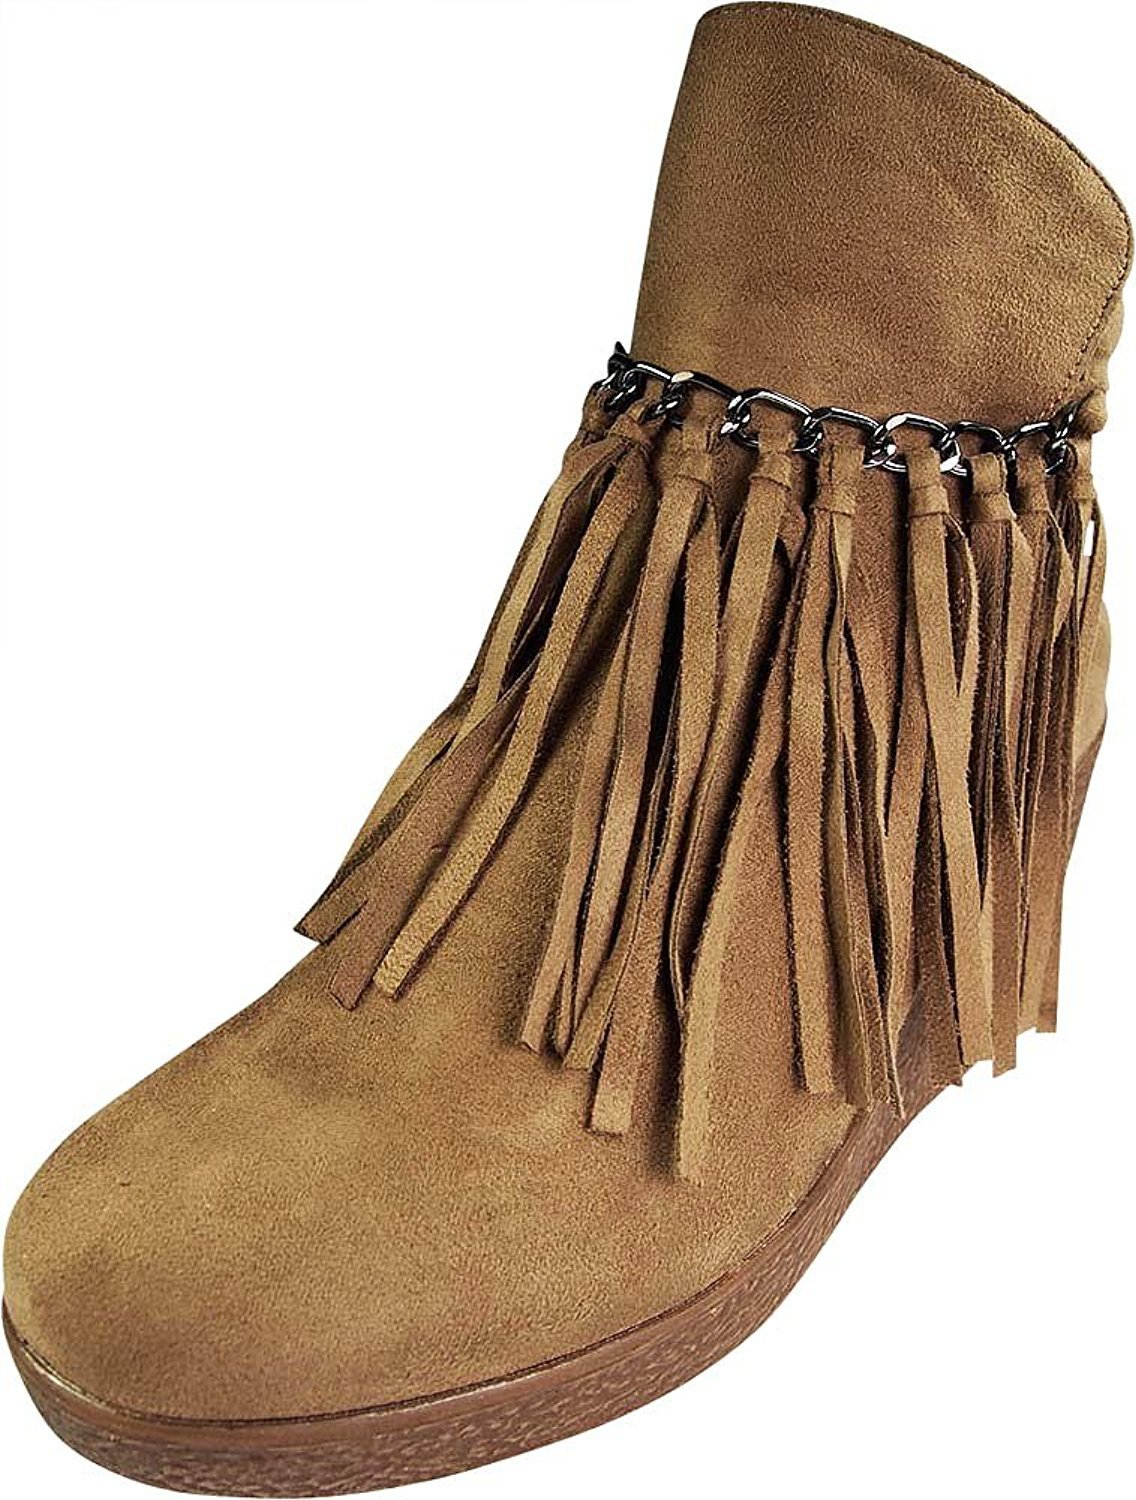 Wedge Fringe Ankle Bootie Taupe